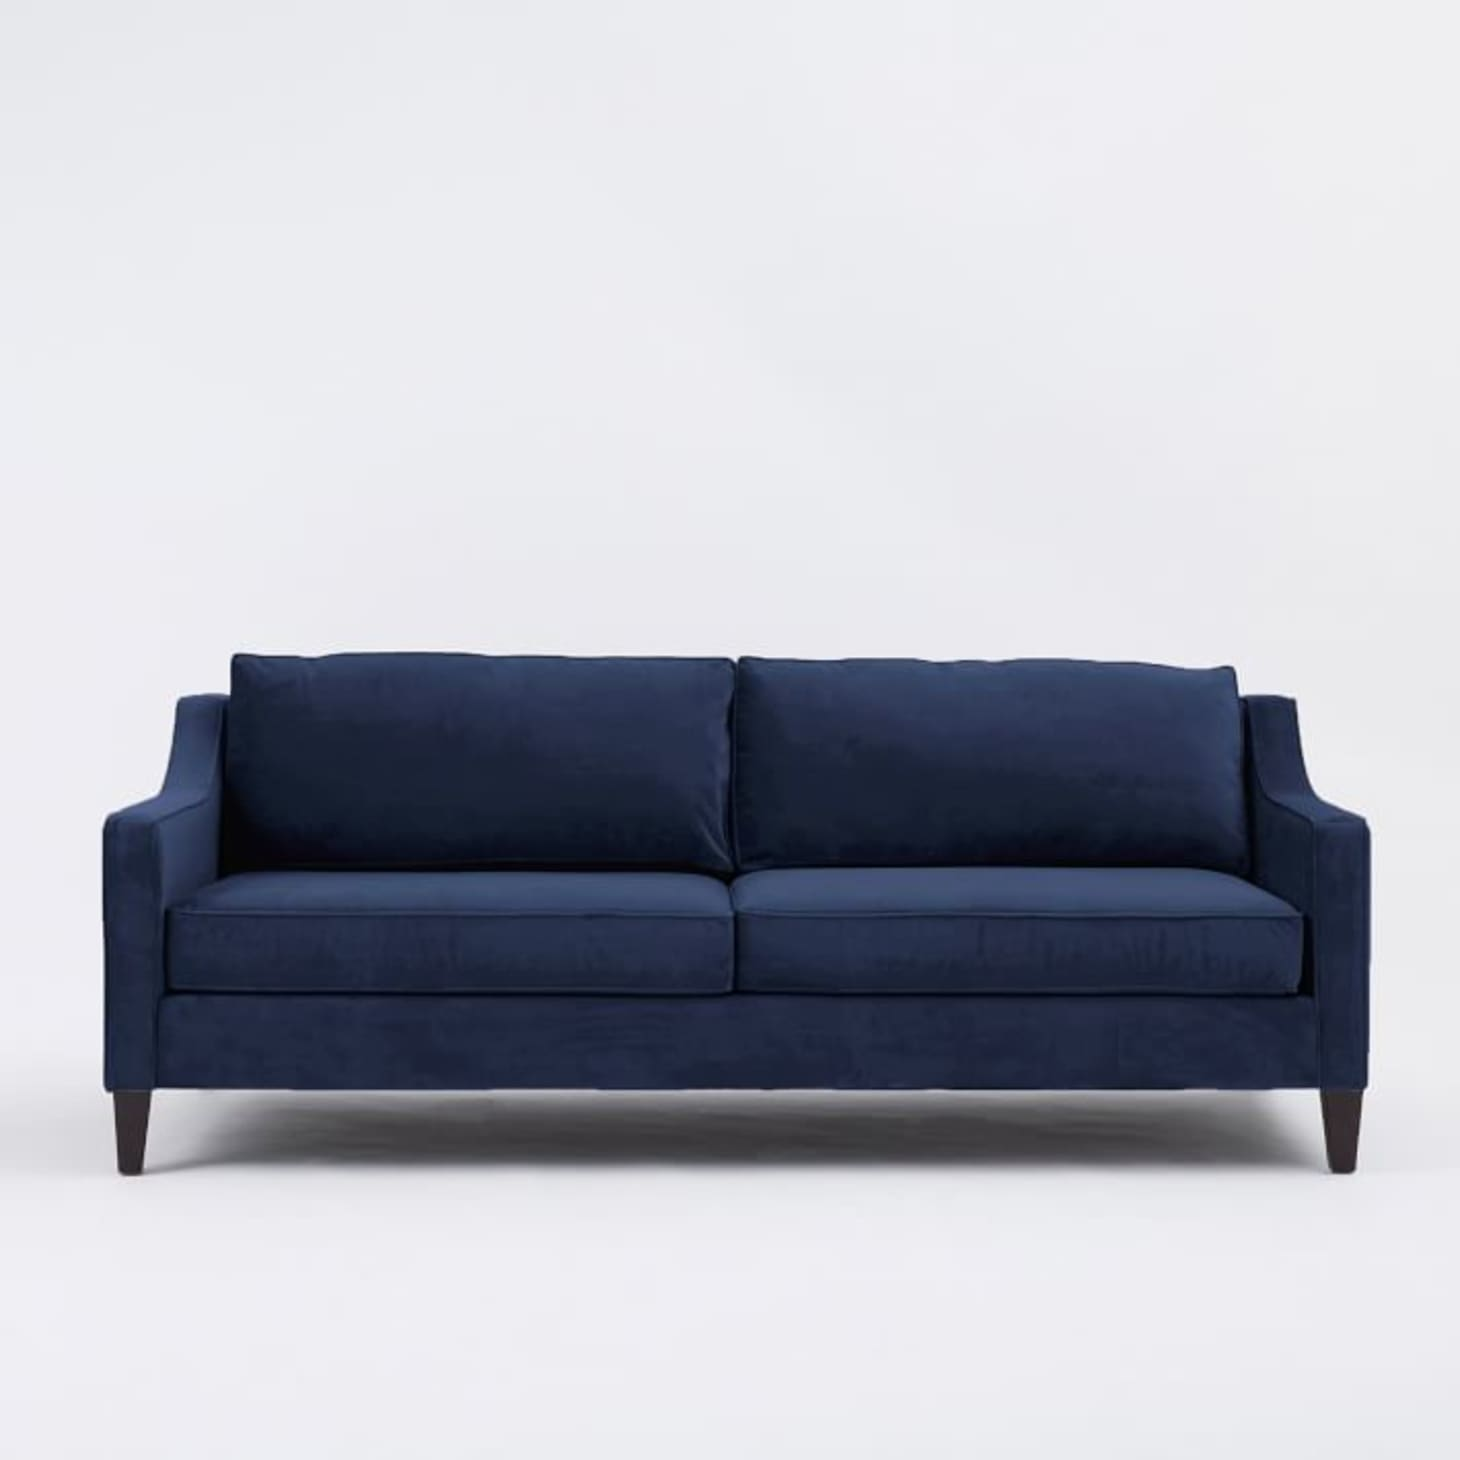 Most At The Comfortable Sofas West ElmTestedamp; Reviewed ...